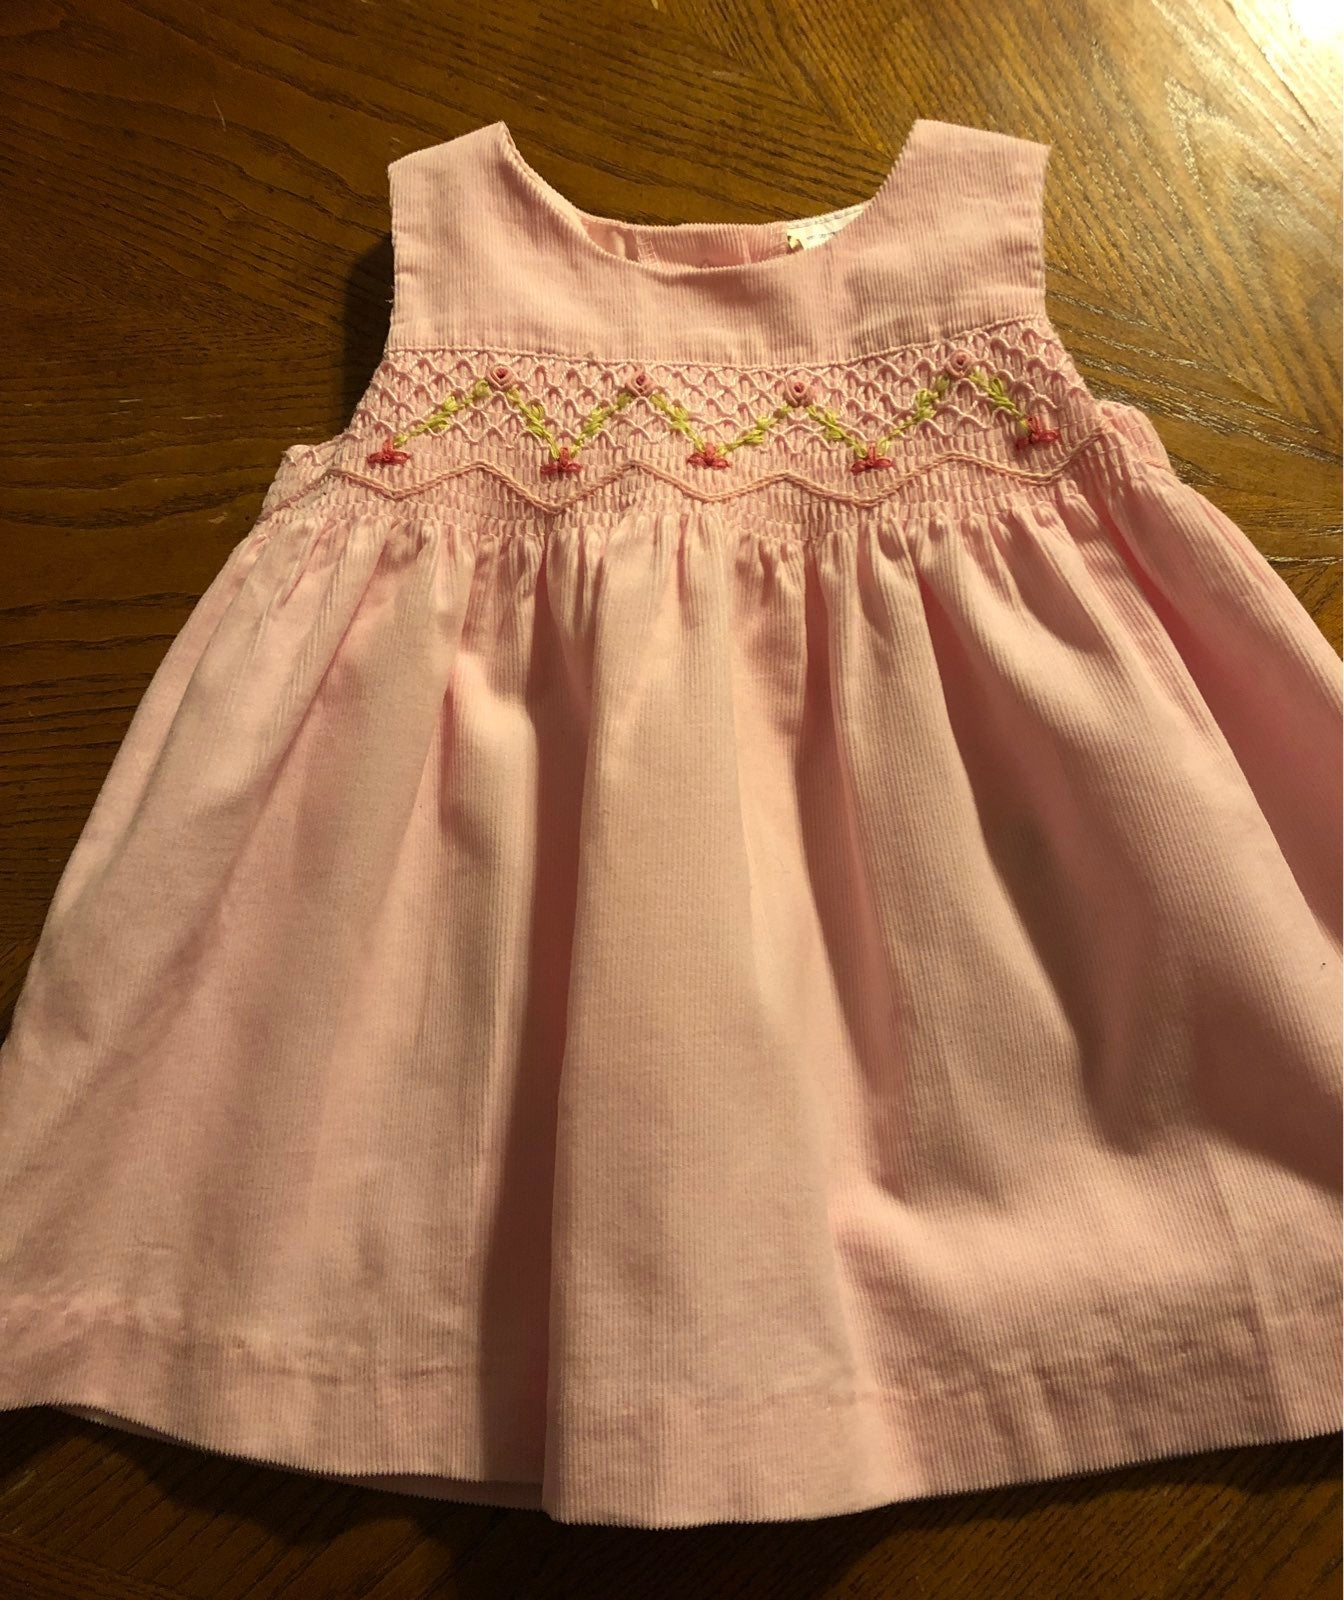 SOLD TO SUSAN Precious dress size 3-6 mo